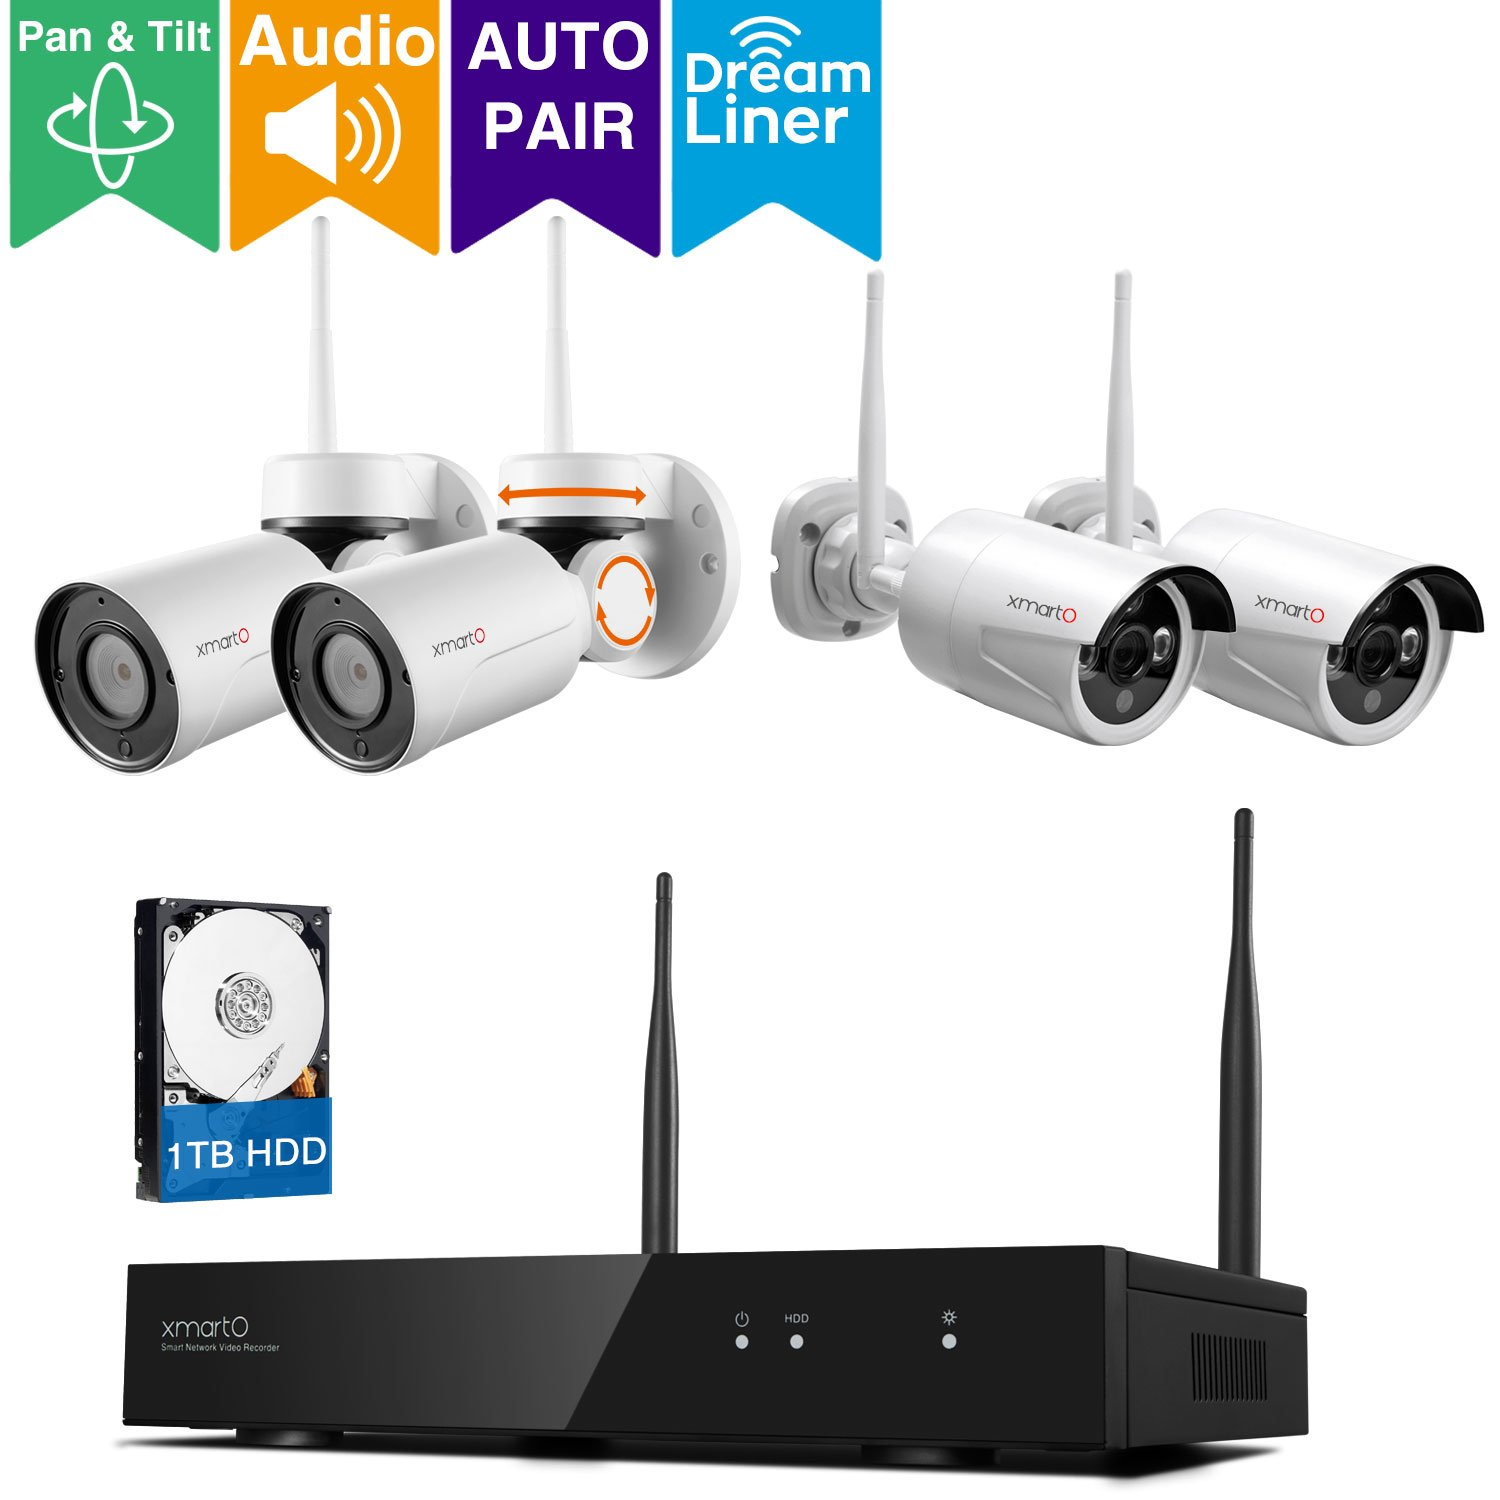 [Dream Liner WiFi Relay] xmartO 8 Channel 960p HD Wireless Security Camera System with